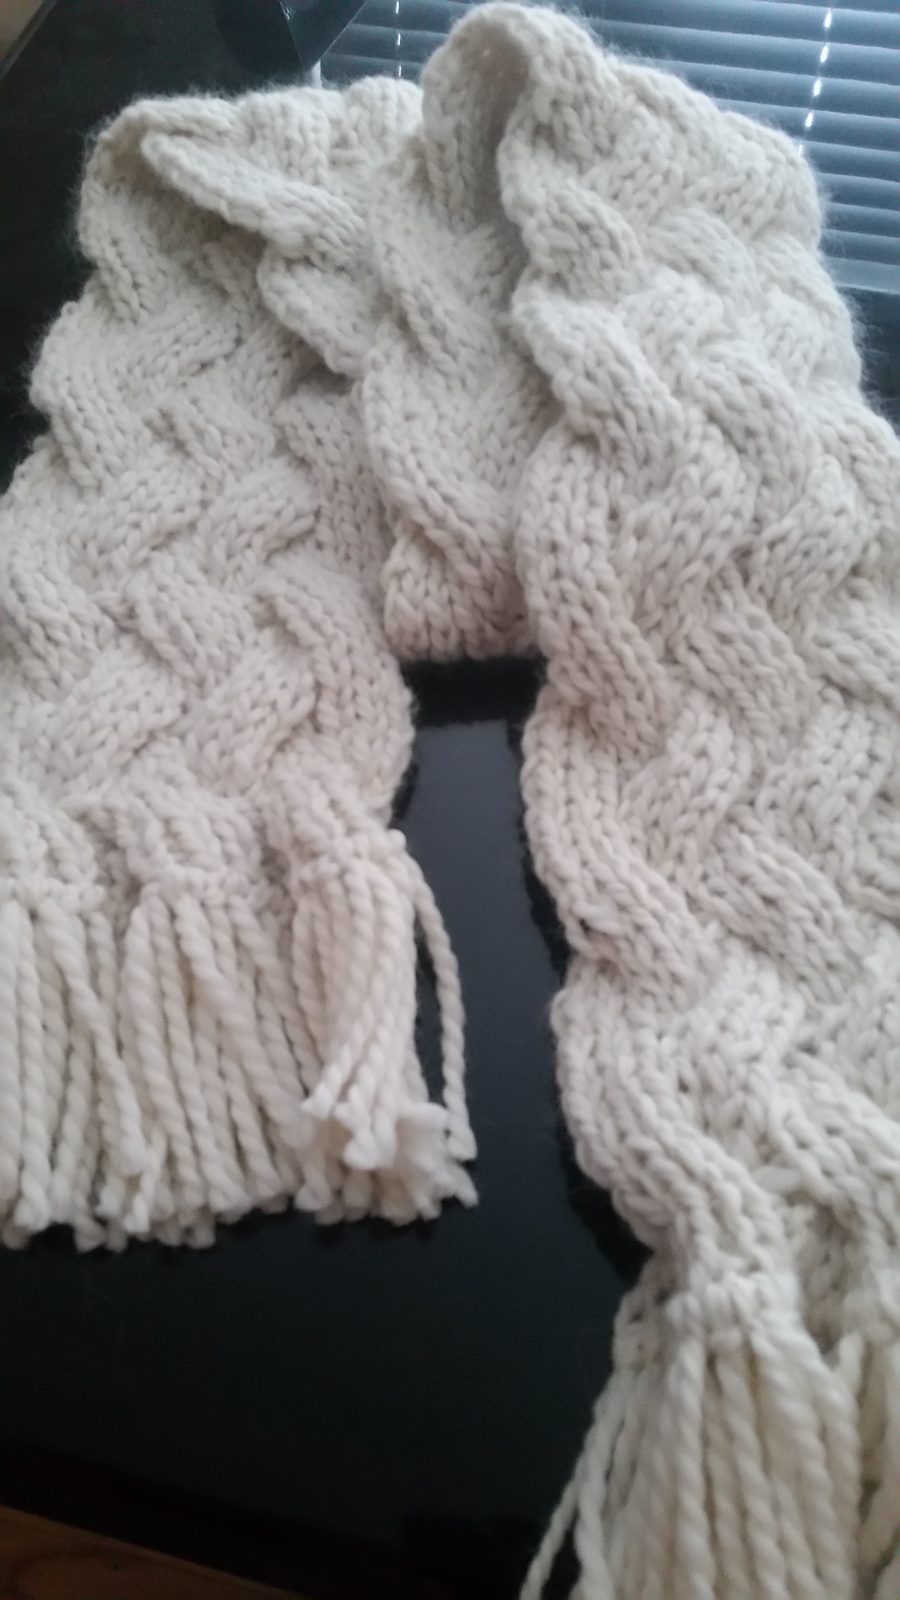 Reversible Cable Knitting Patterns | Knit patterns, Cable and Scarves